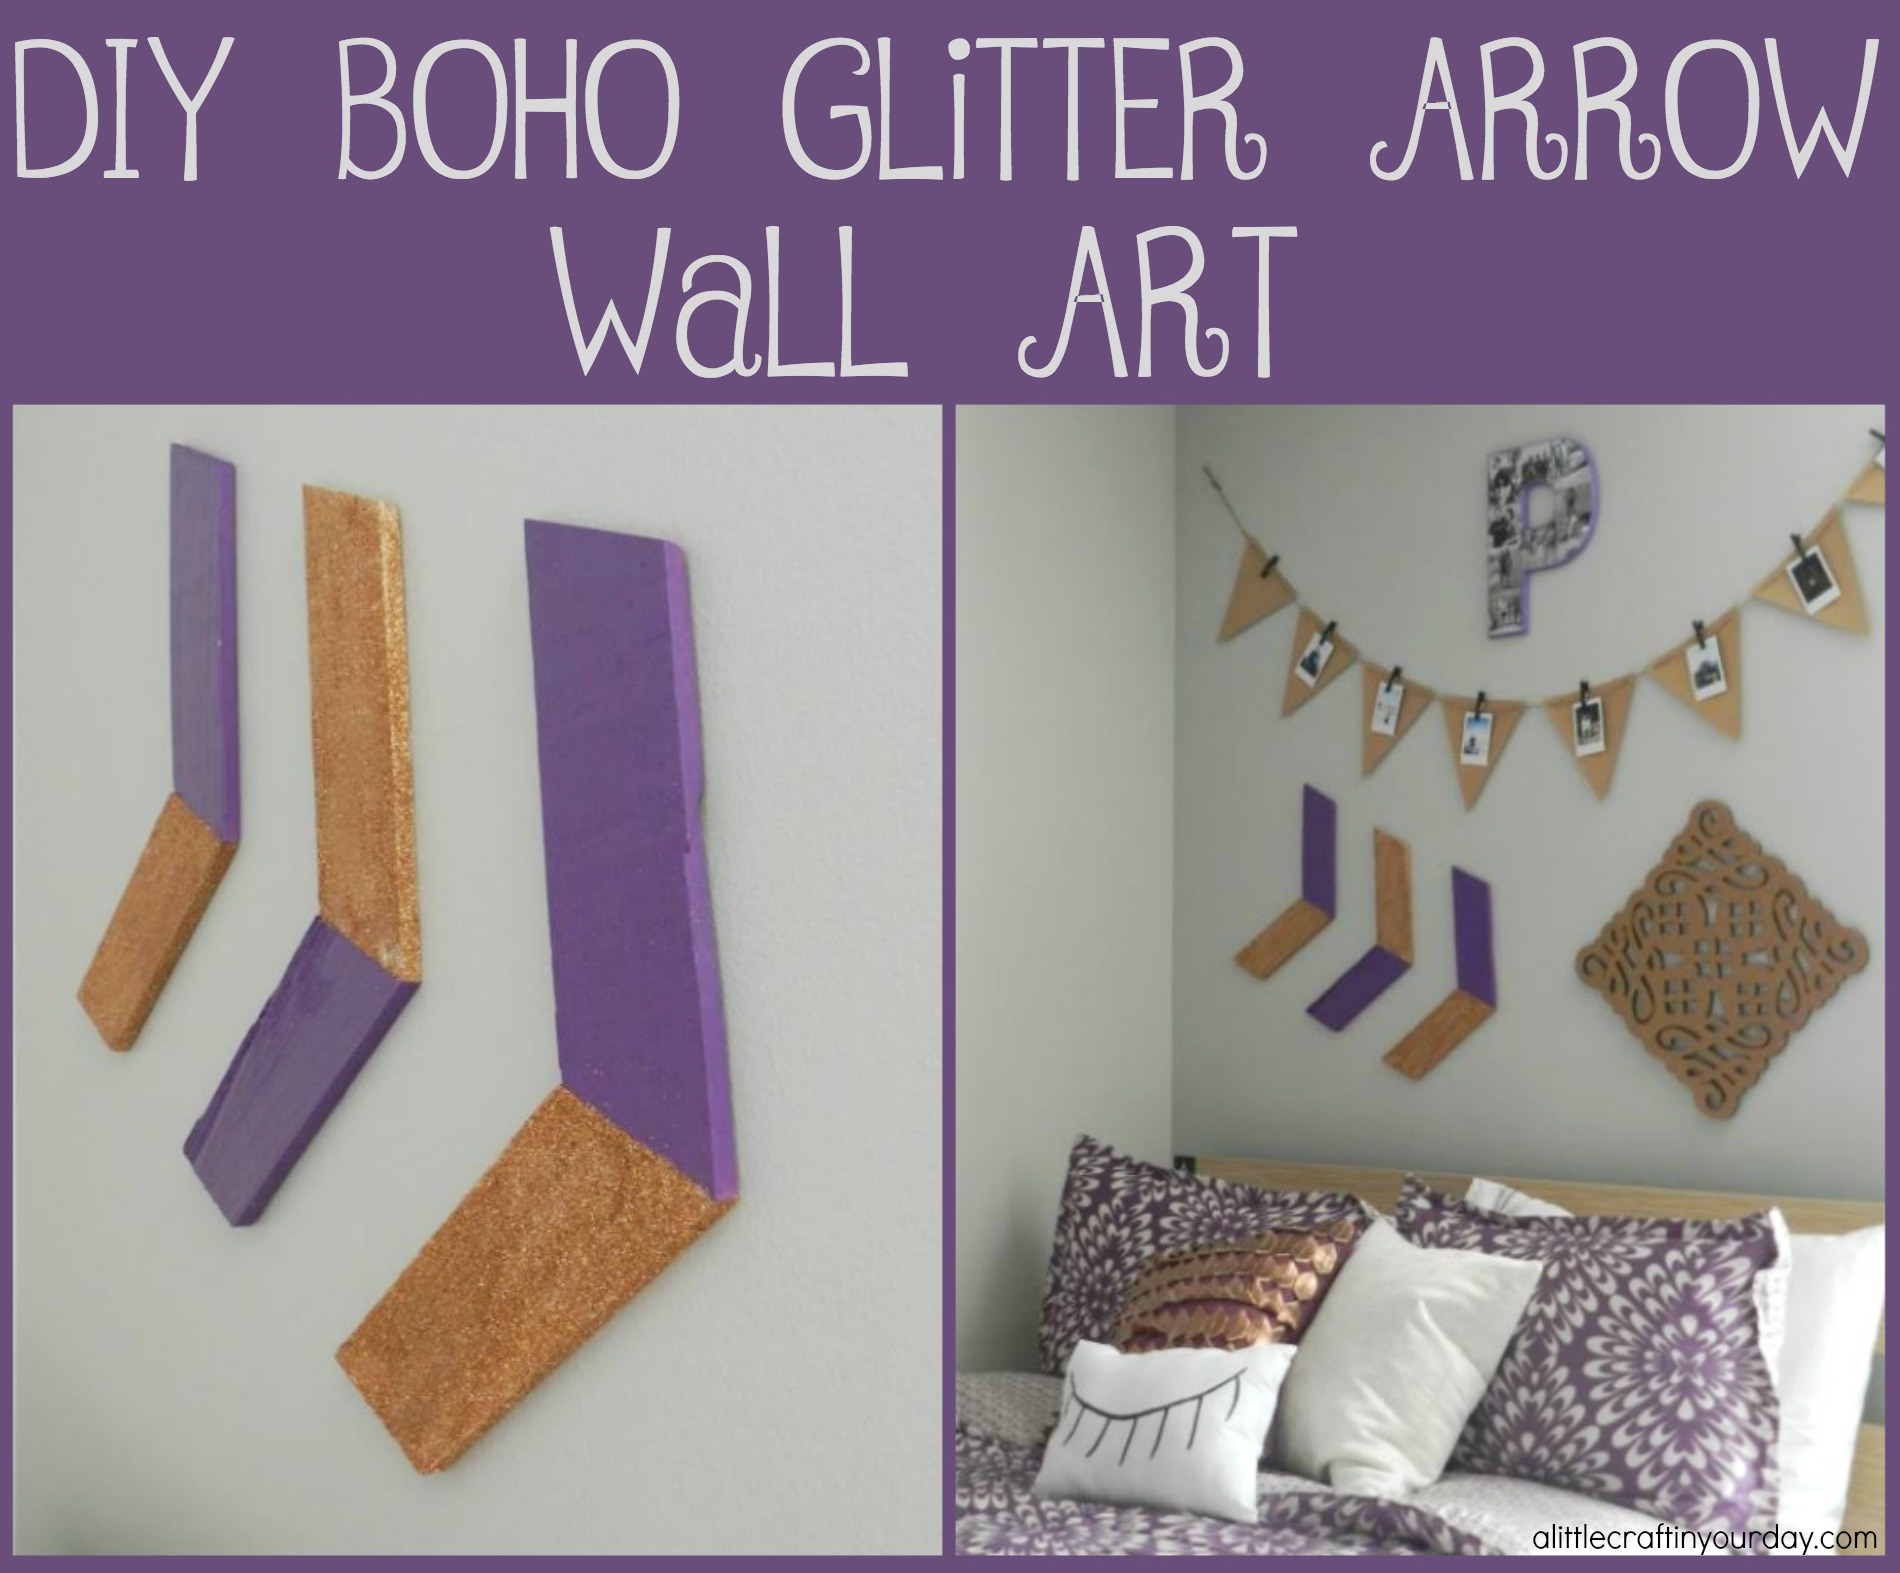 Glitter Wall Art diy boho glitter arrow wall art - a little craft in your day